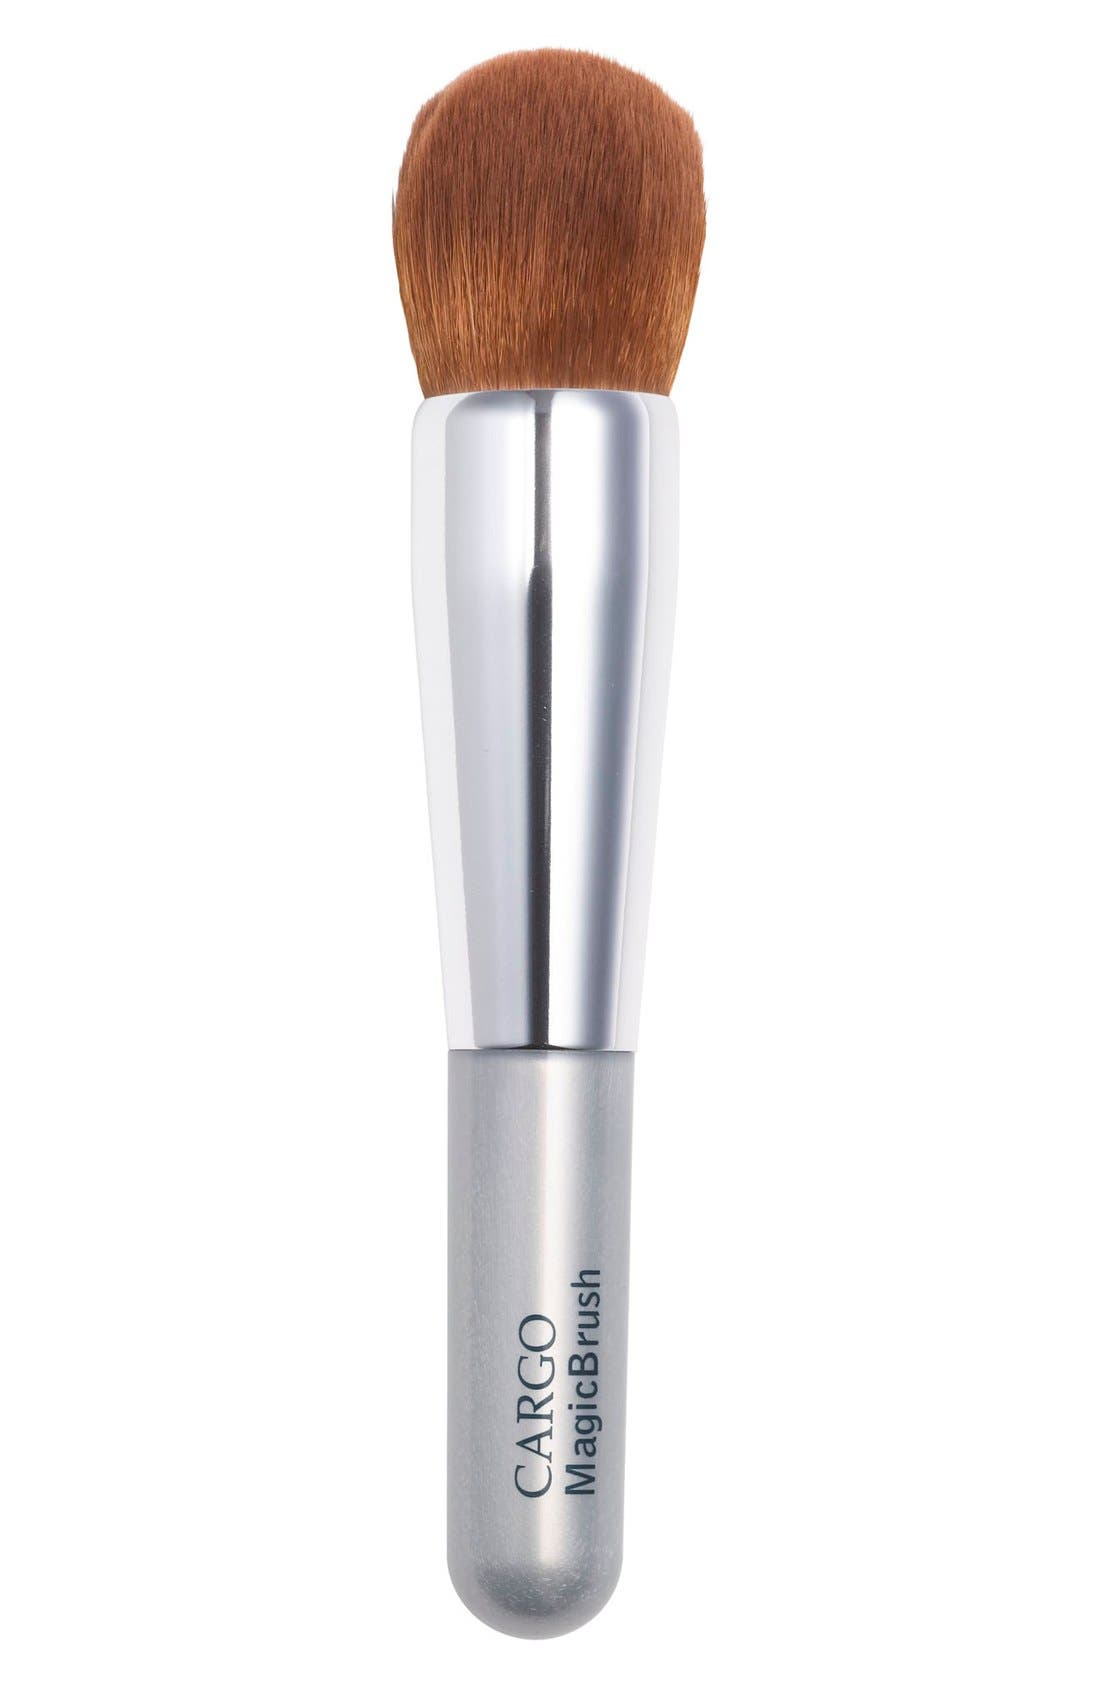 CARGO 'Magic' Brush